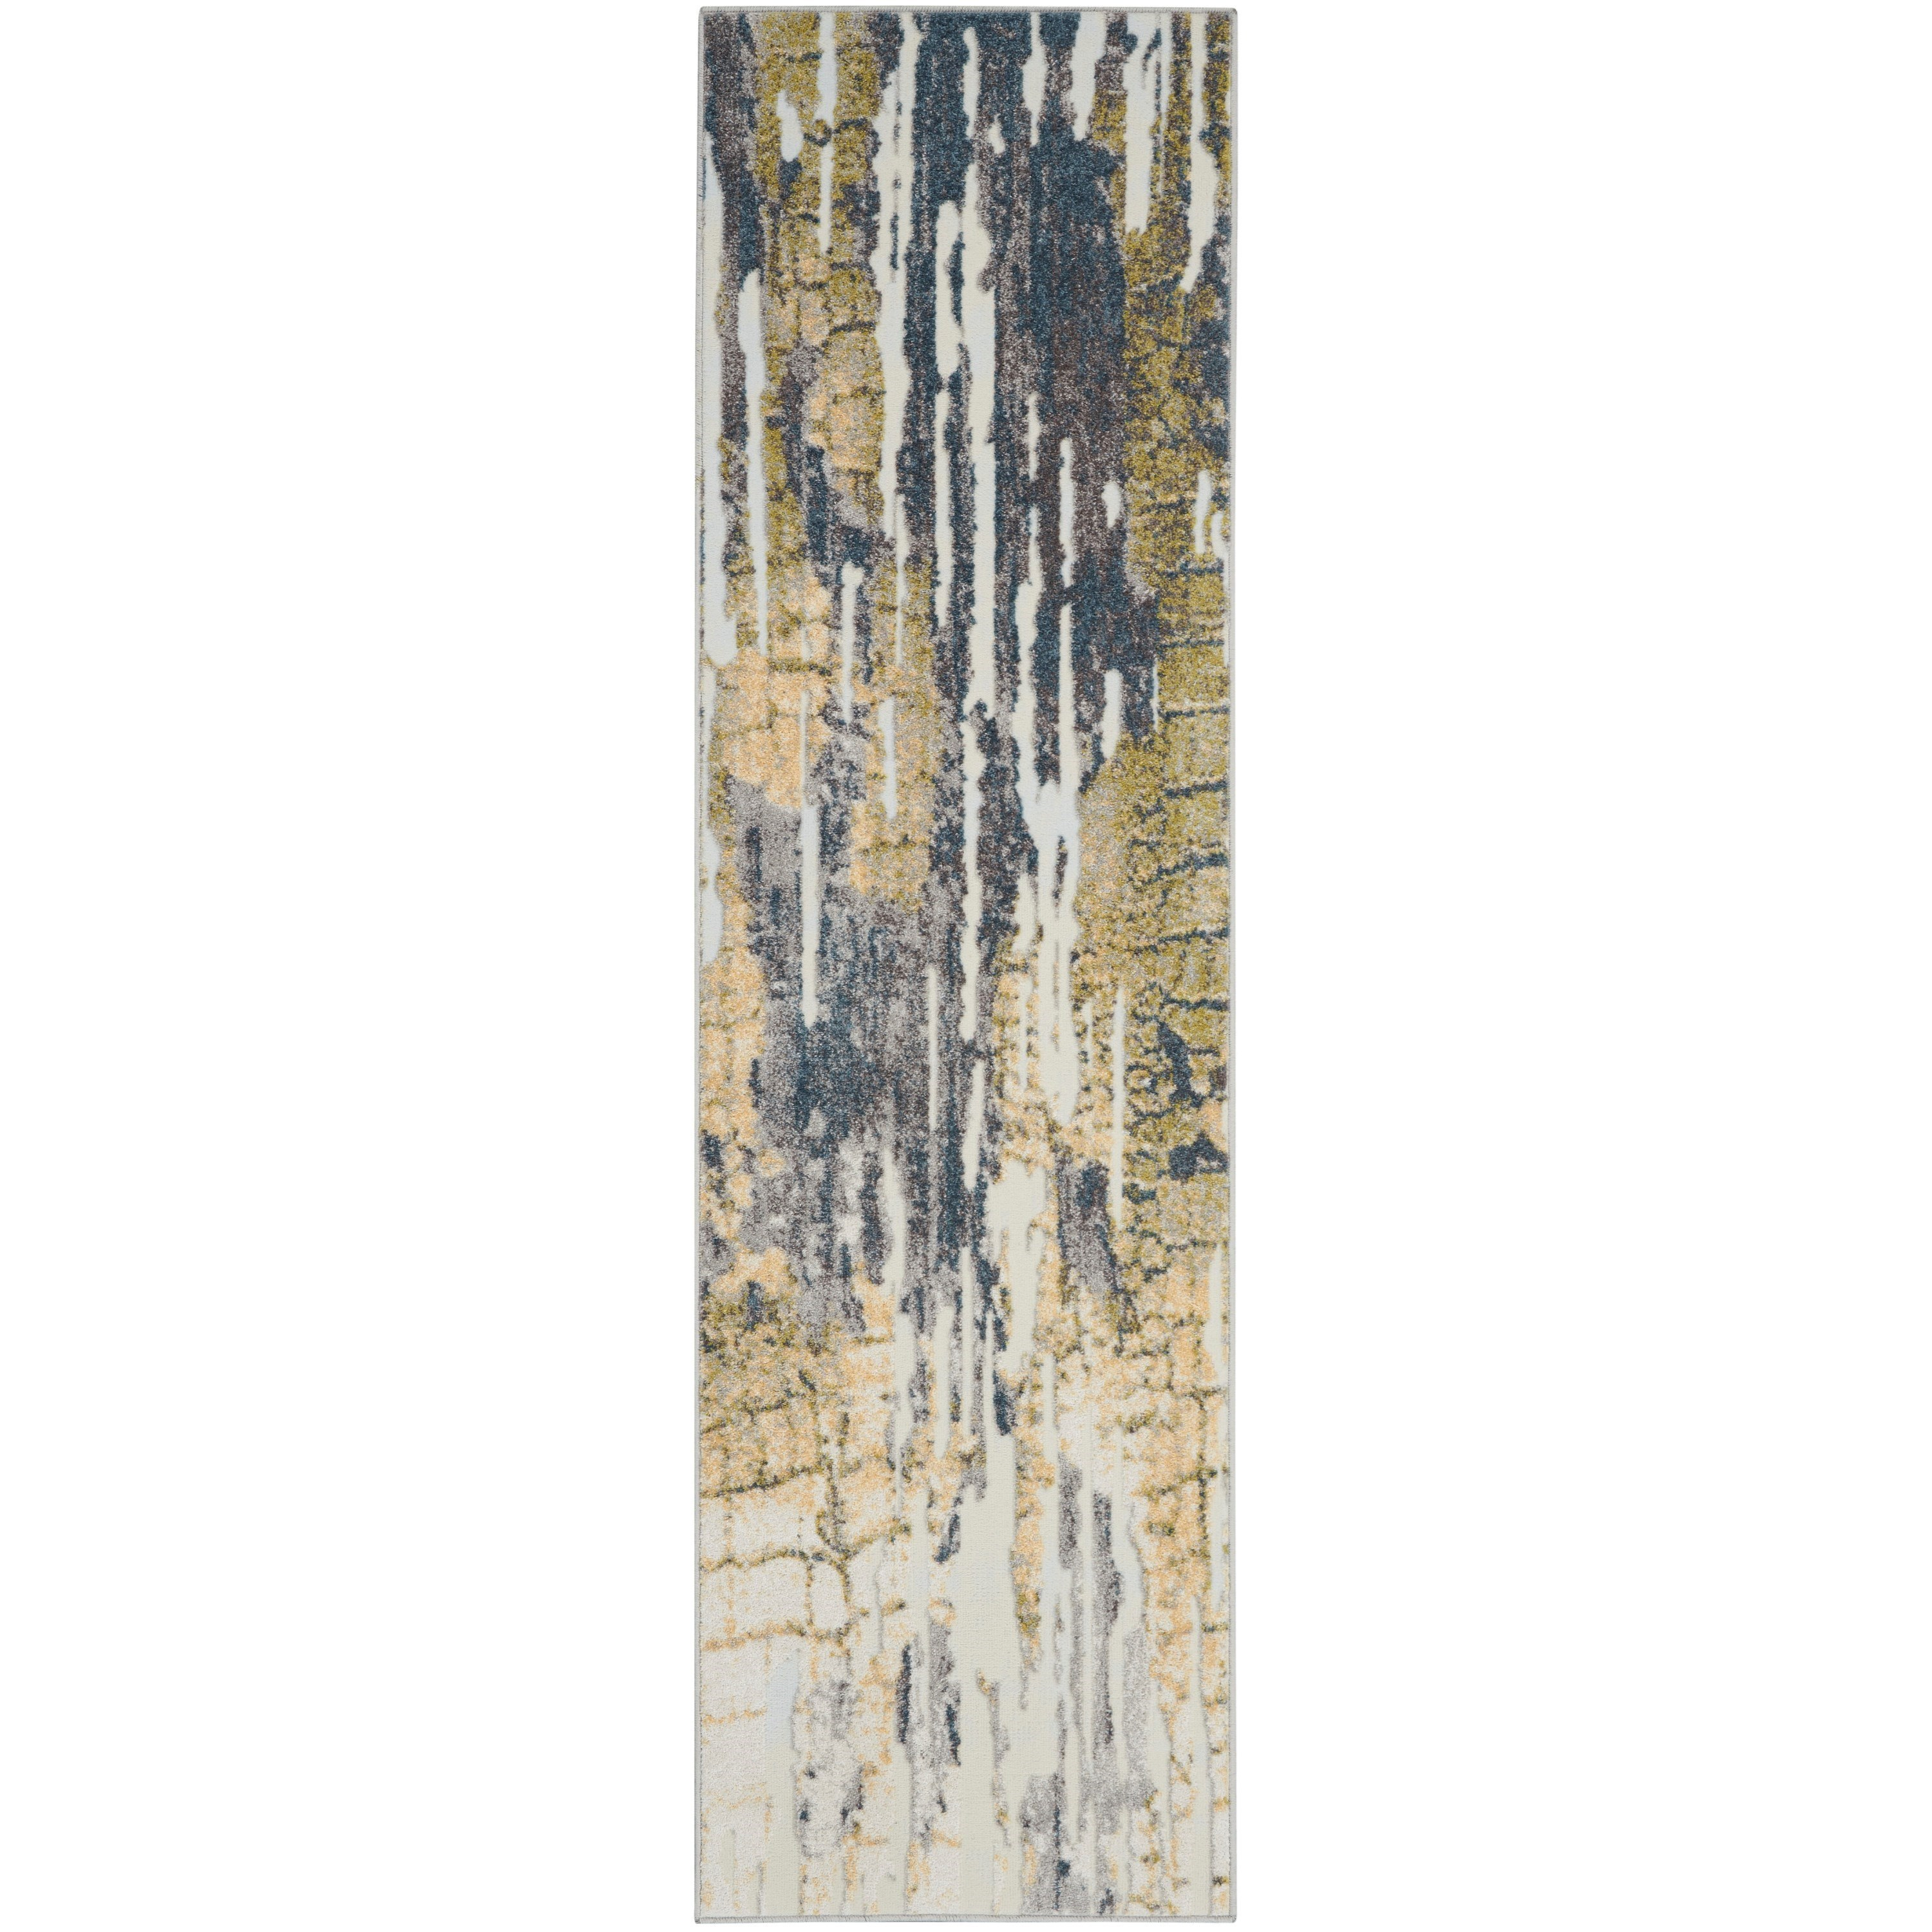 Trance 2020 8' Runner Rug by Nourison at Home Collections Furniture